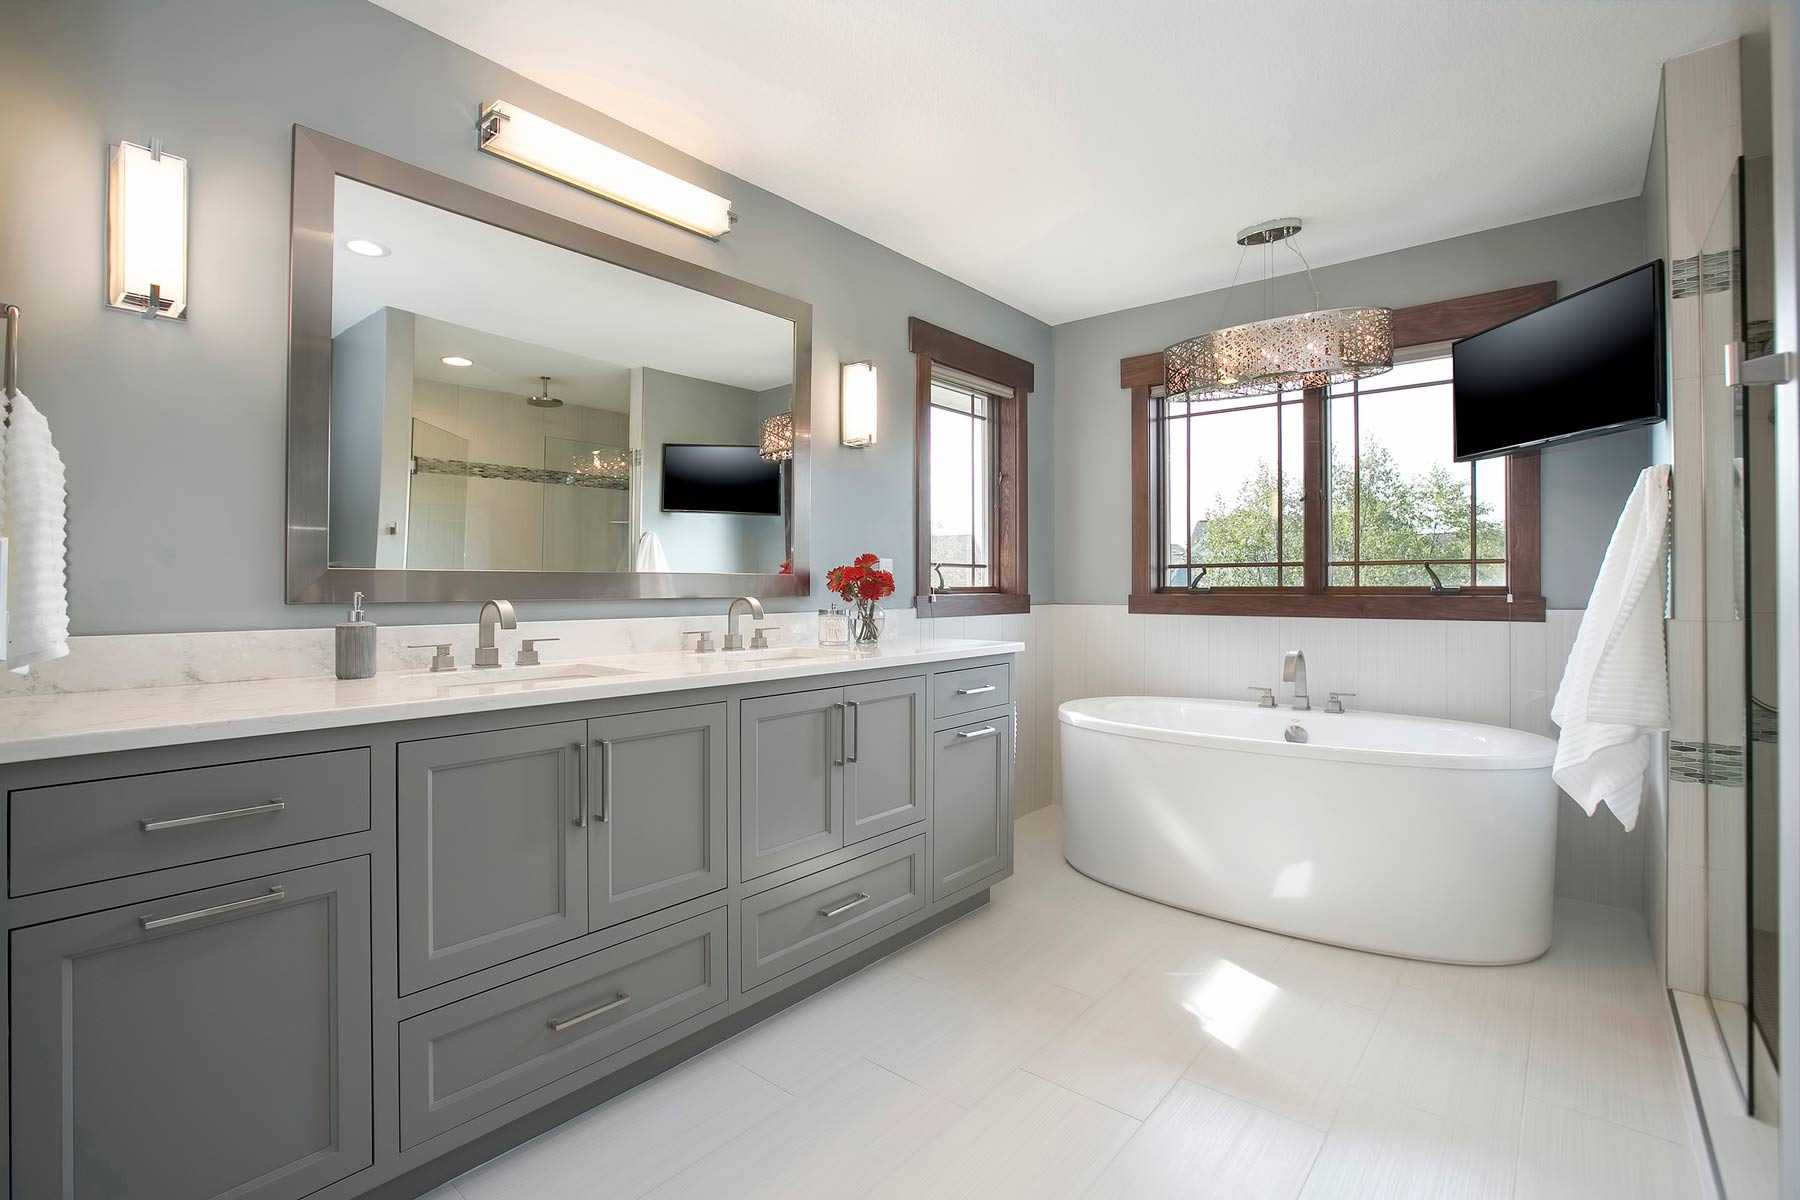 Twin Cities Home Design Remodeling James Barton DesignBuild